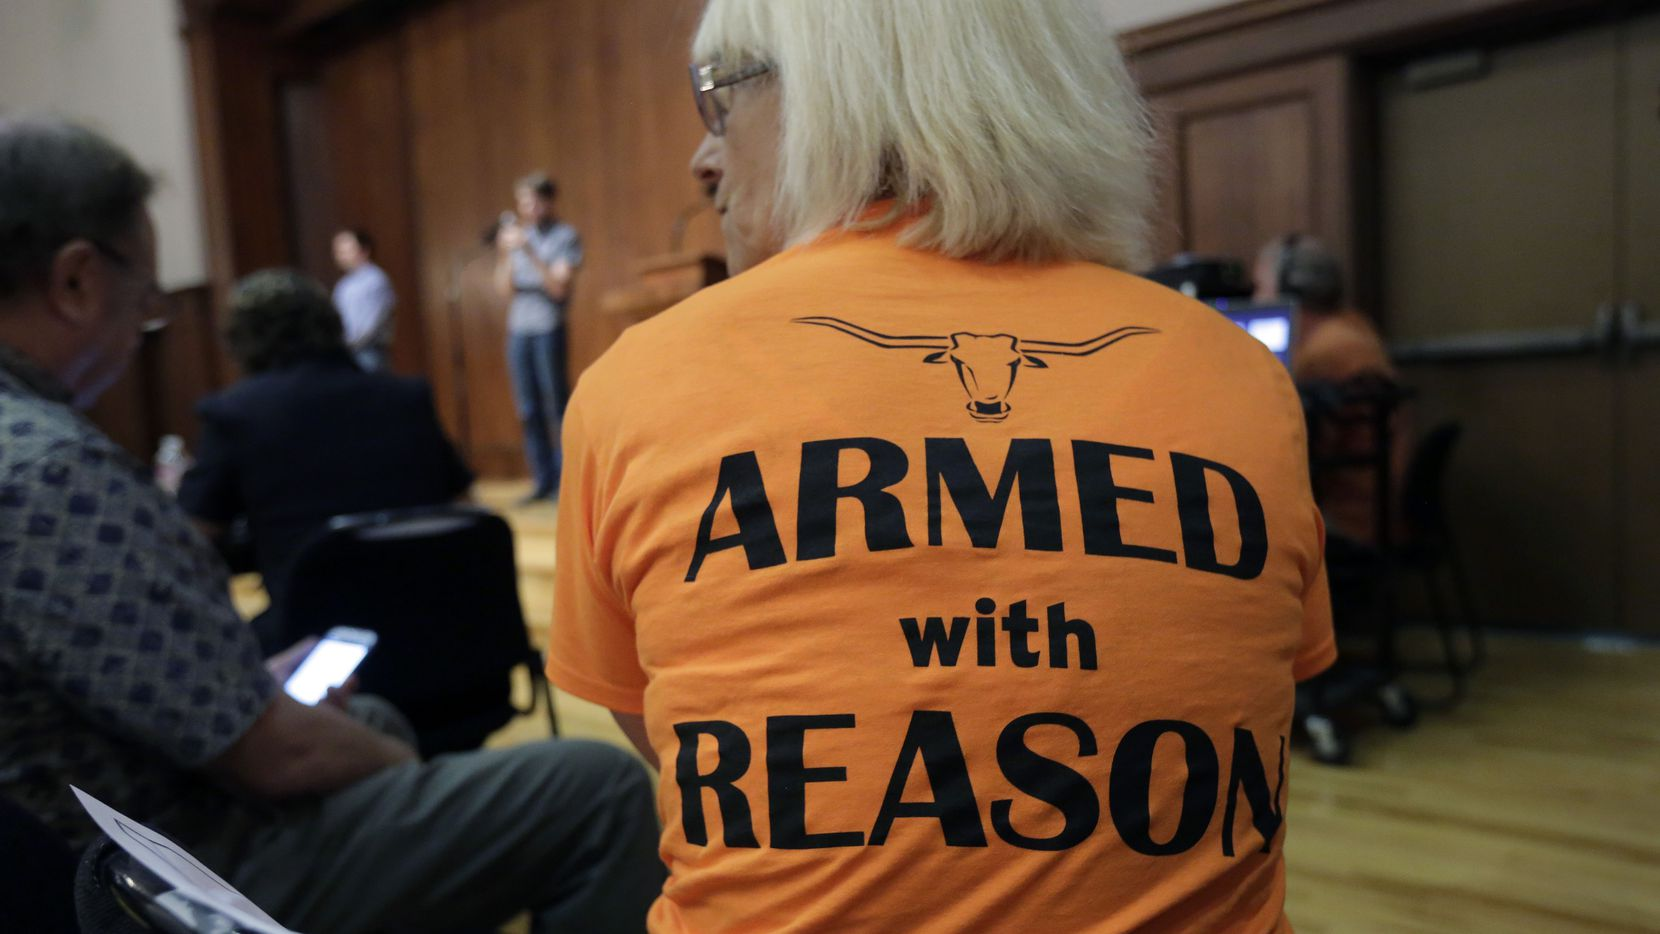 Professor Ann Cvetkovich waited to speak about Texas' new campus carry law during a public forum at the University of Texas at Austin last September. (File Photo/The Associated Press)